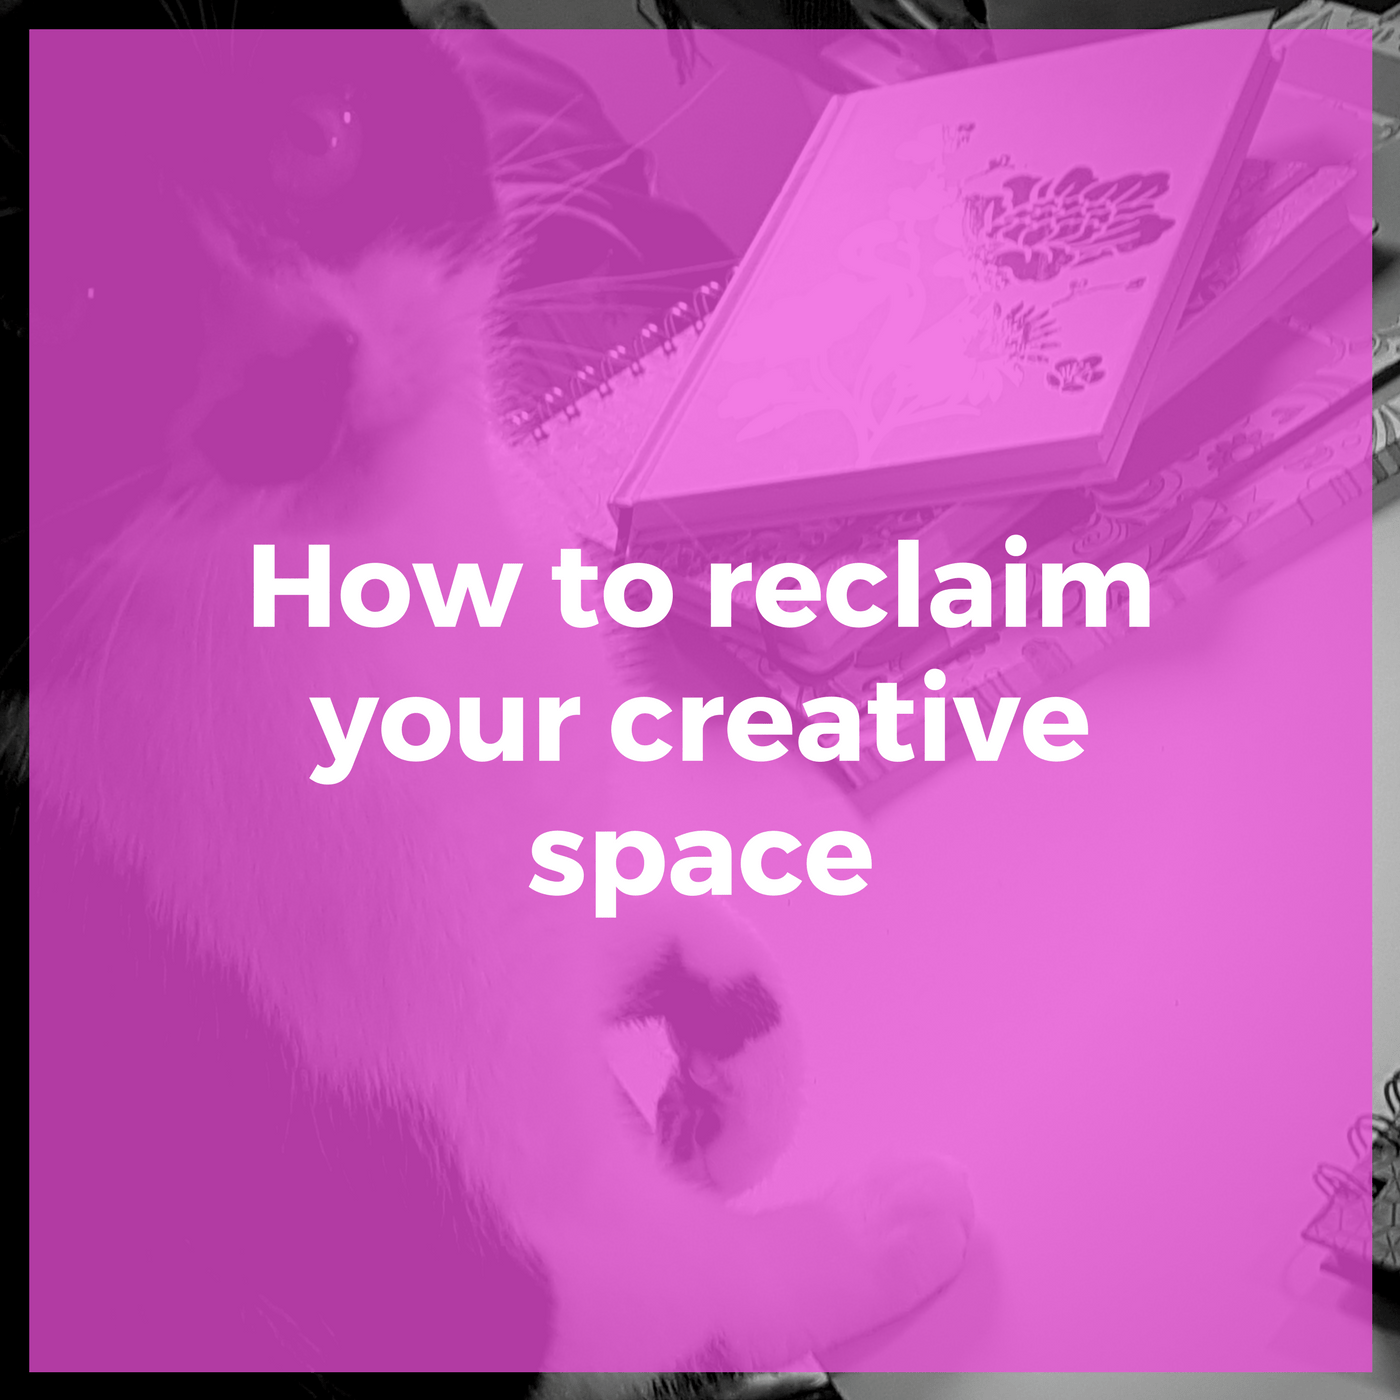 How to reclaim your creative space